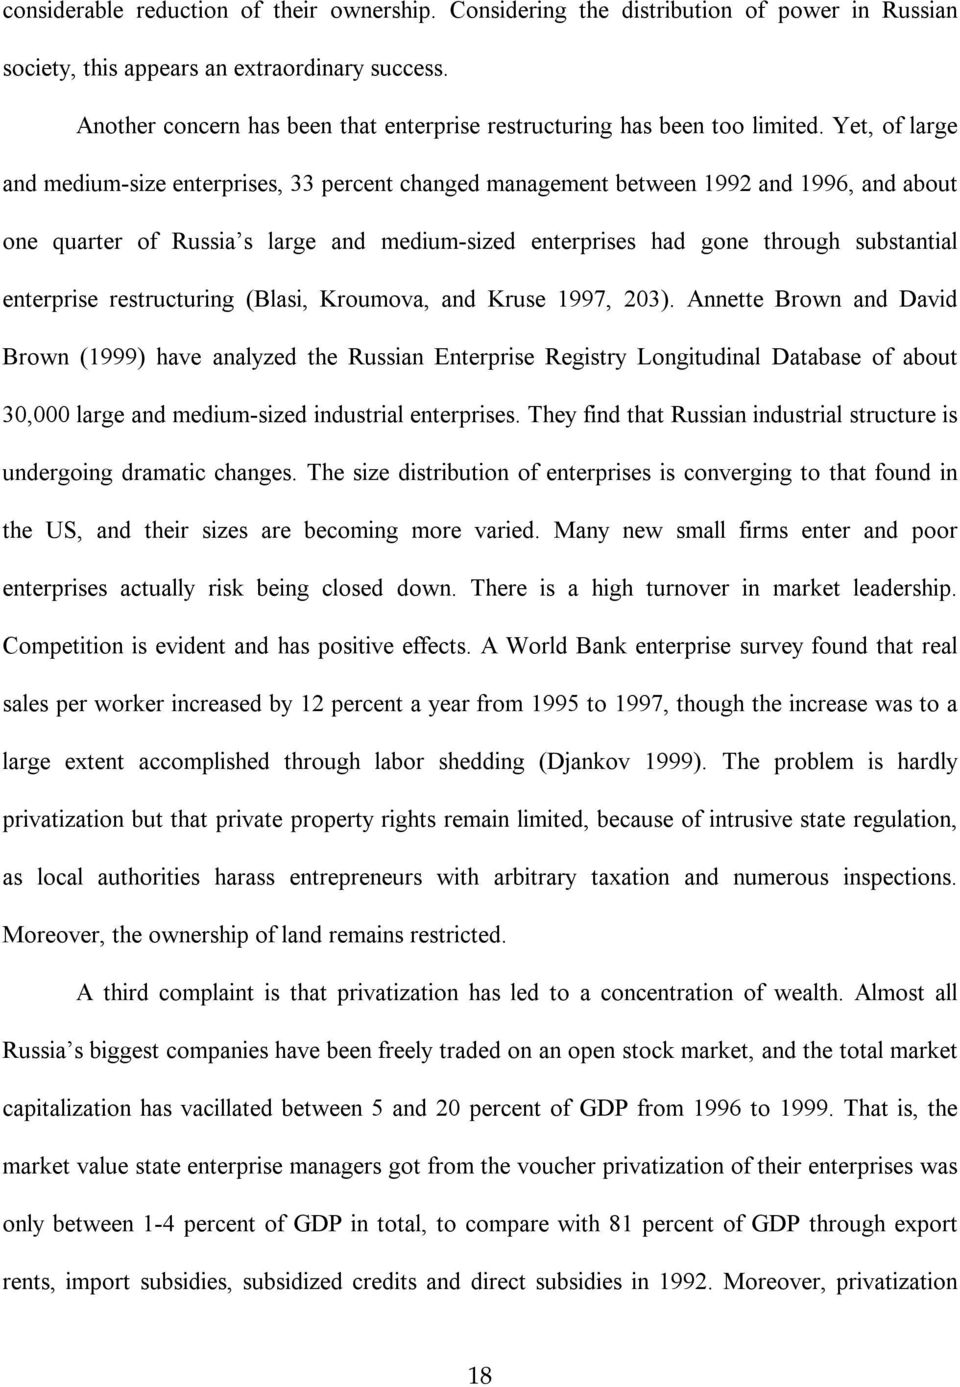 Yet, of large and medium-size enterprises, 33 percent changed management between 1992 and 1996, and about one quarter of Russia s large and medium-sized enterprises had gone through substantial